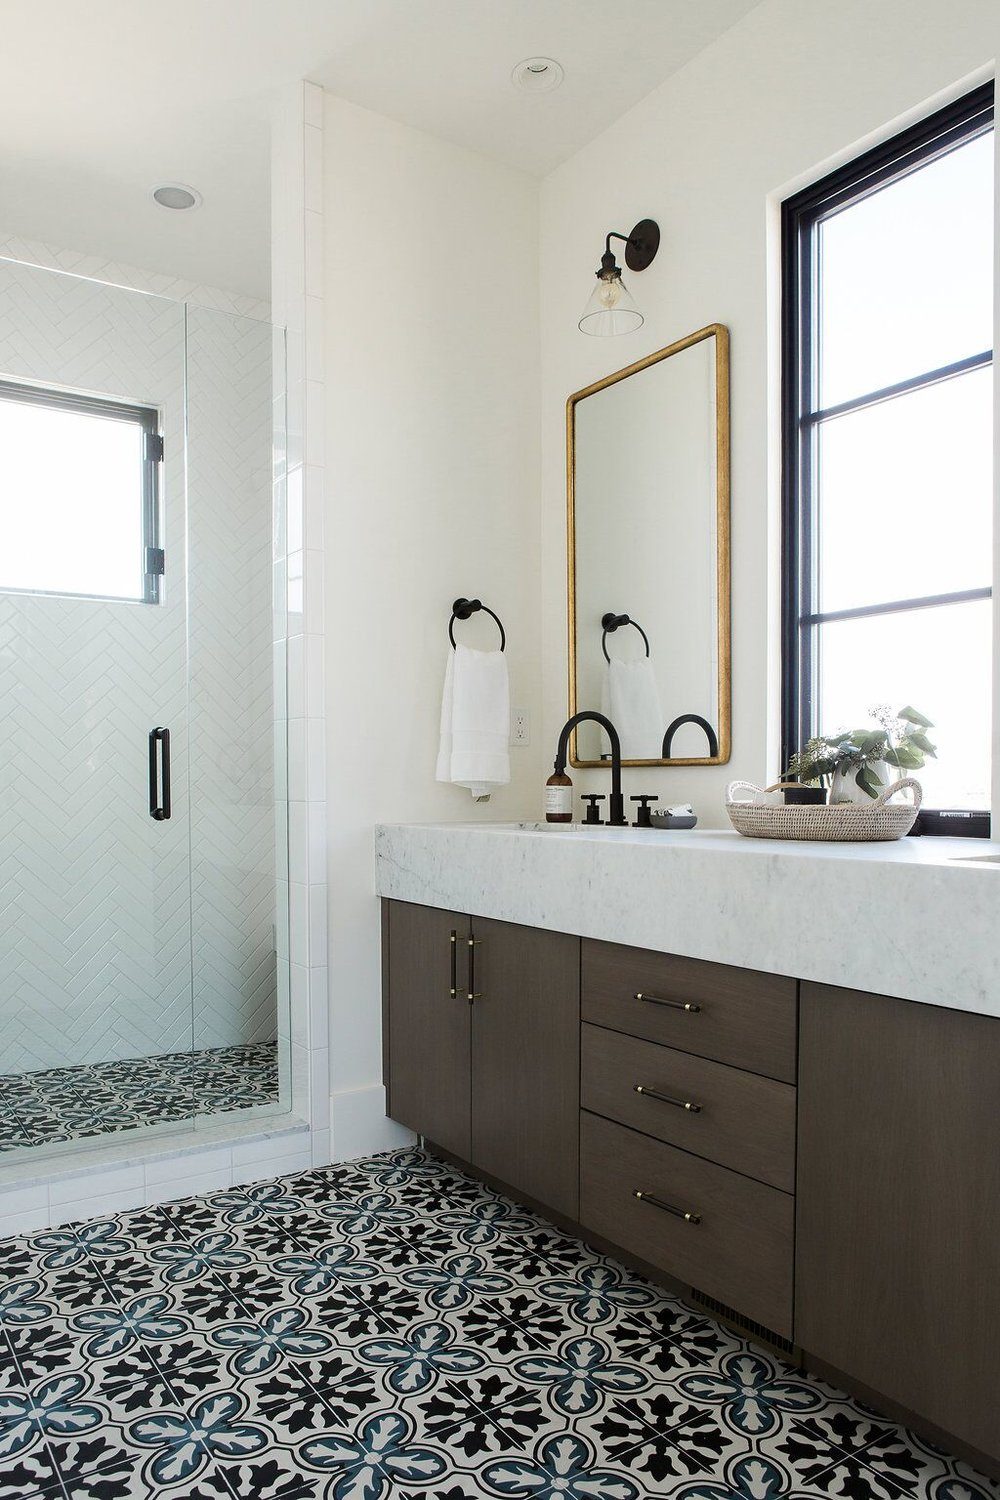 Master bathroom with black and white tiled floor